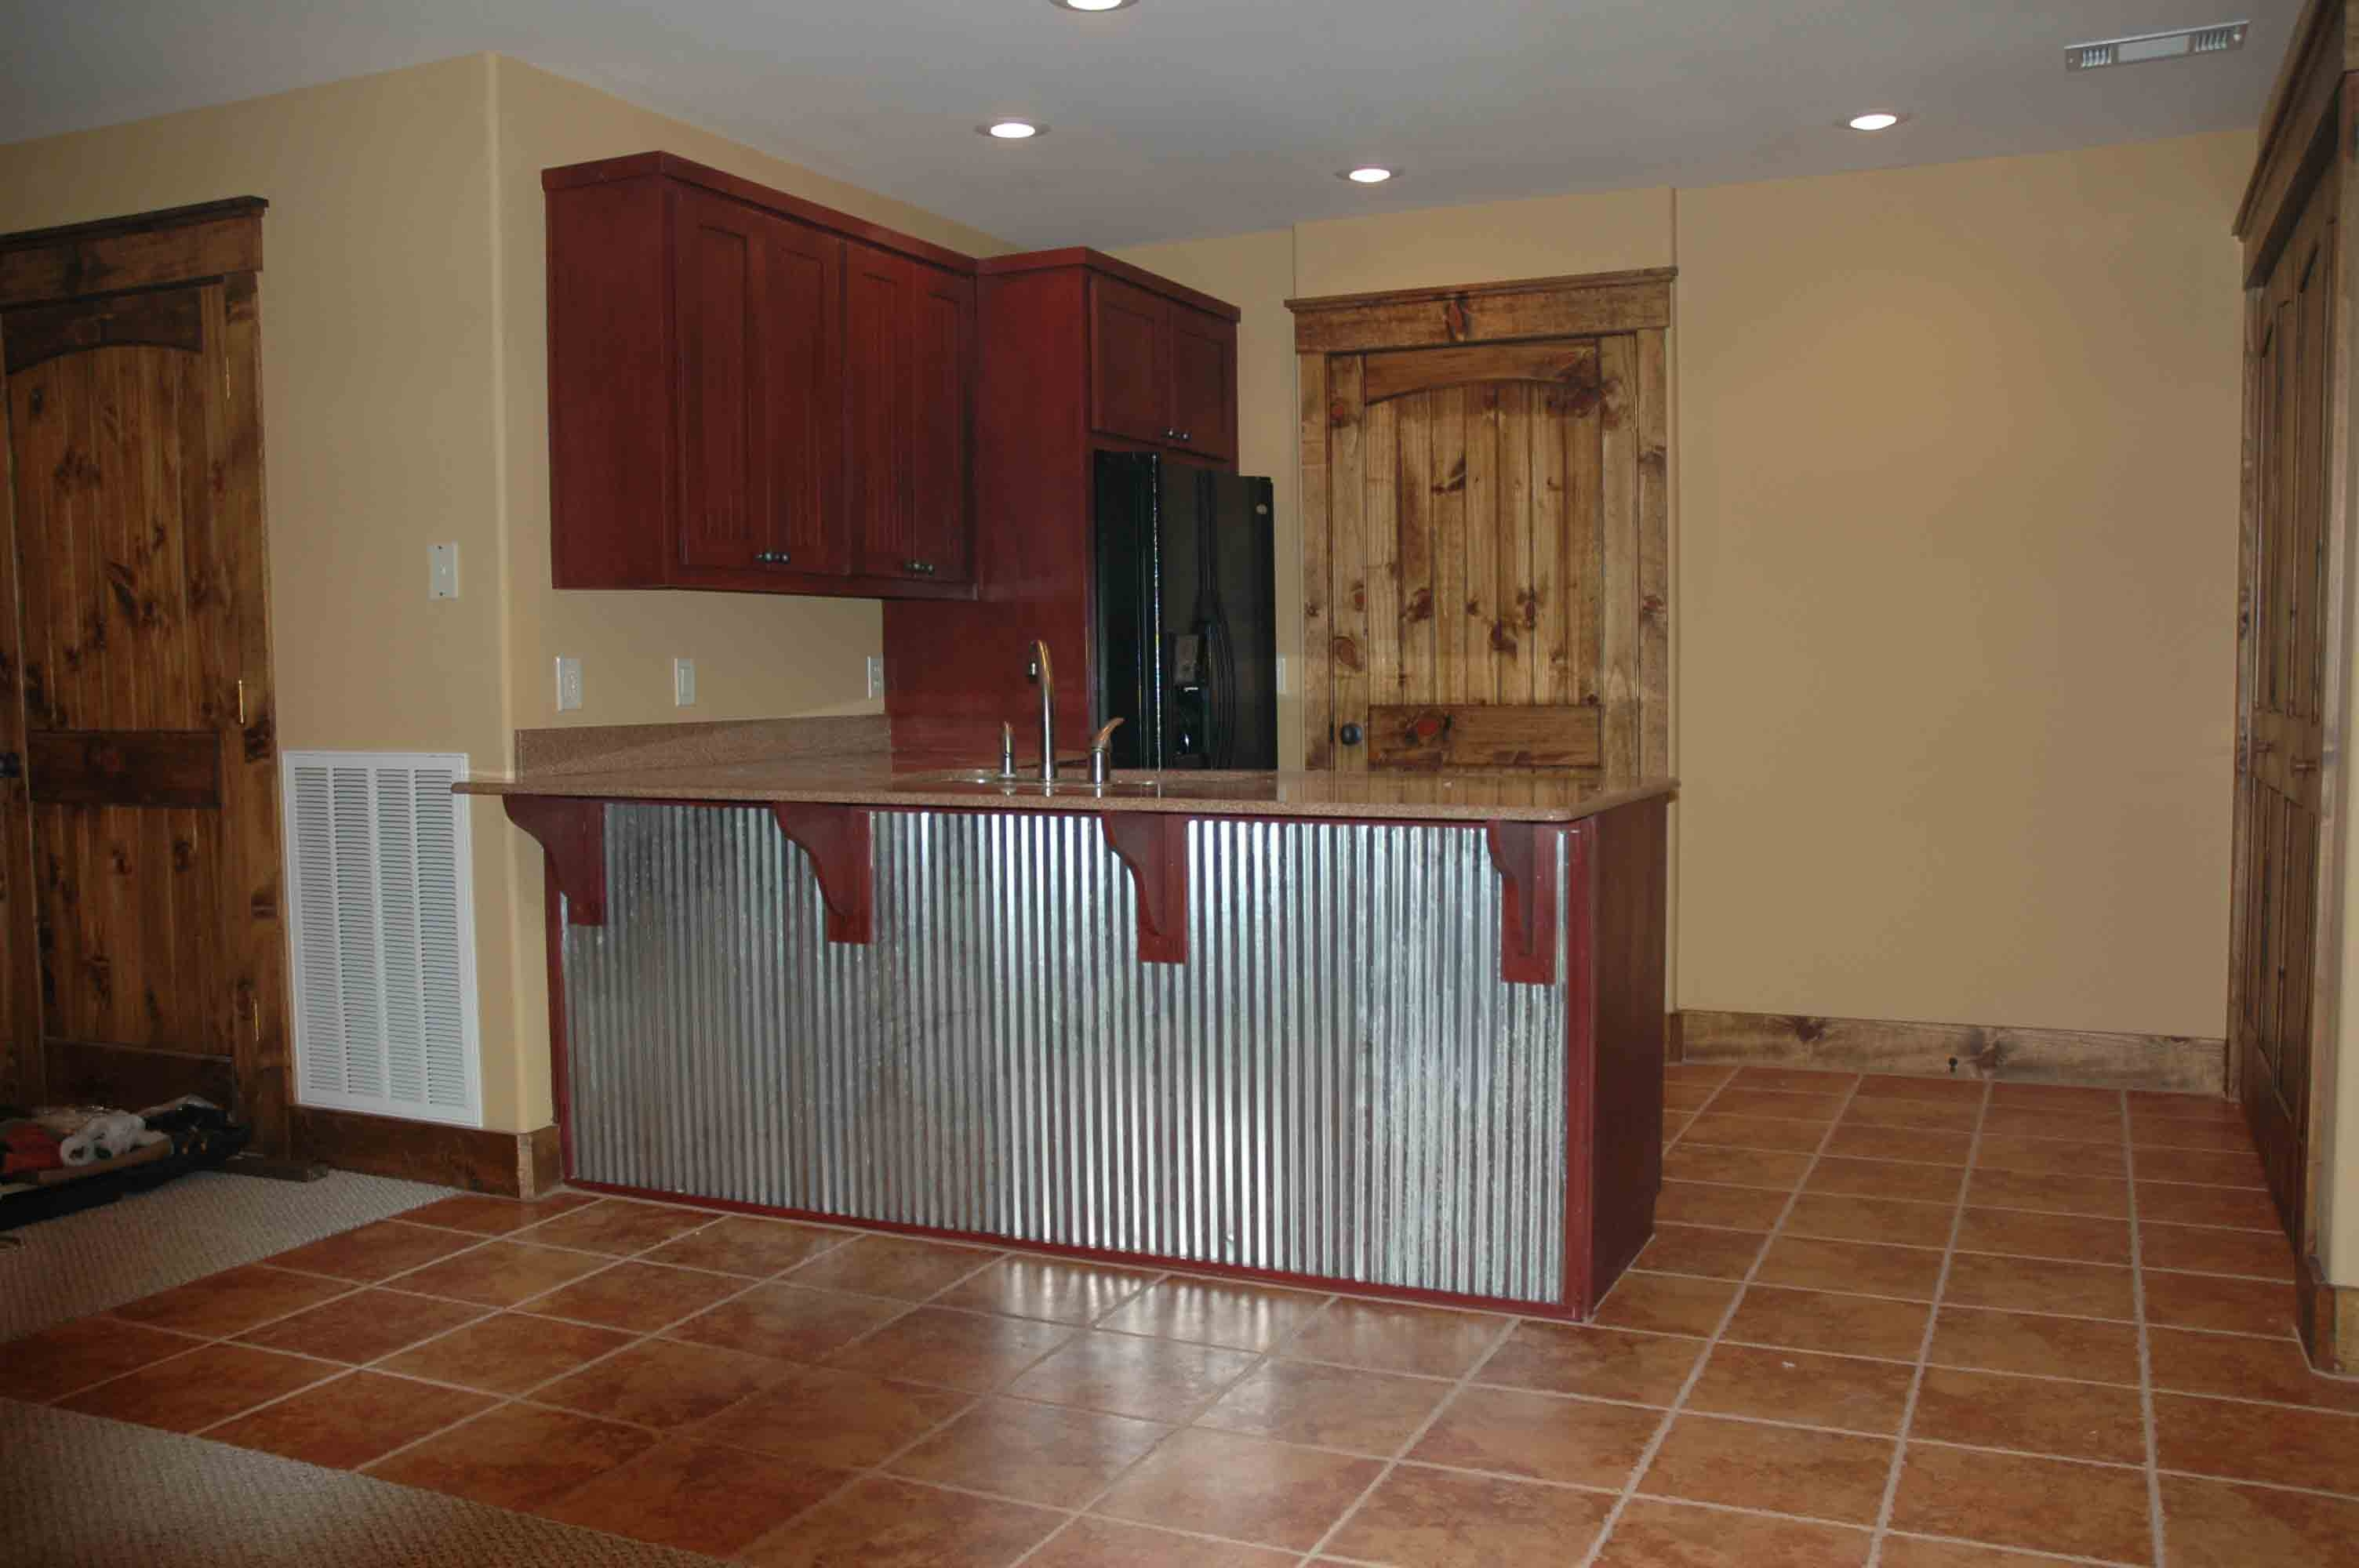 Corrugated Metal Kitchen Cabinet Doors | Kitchen Cabinet